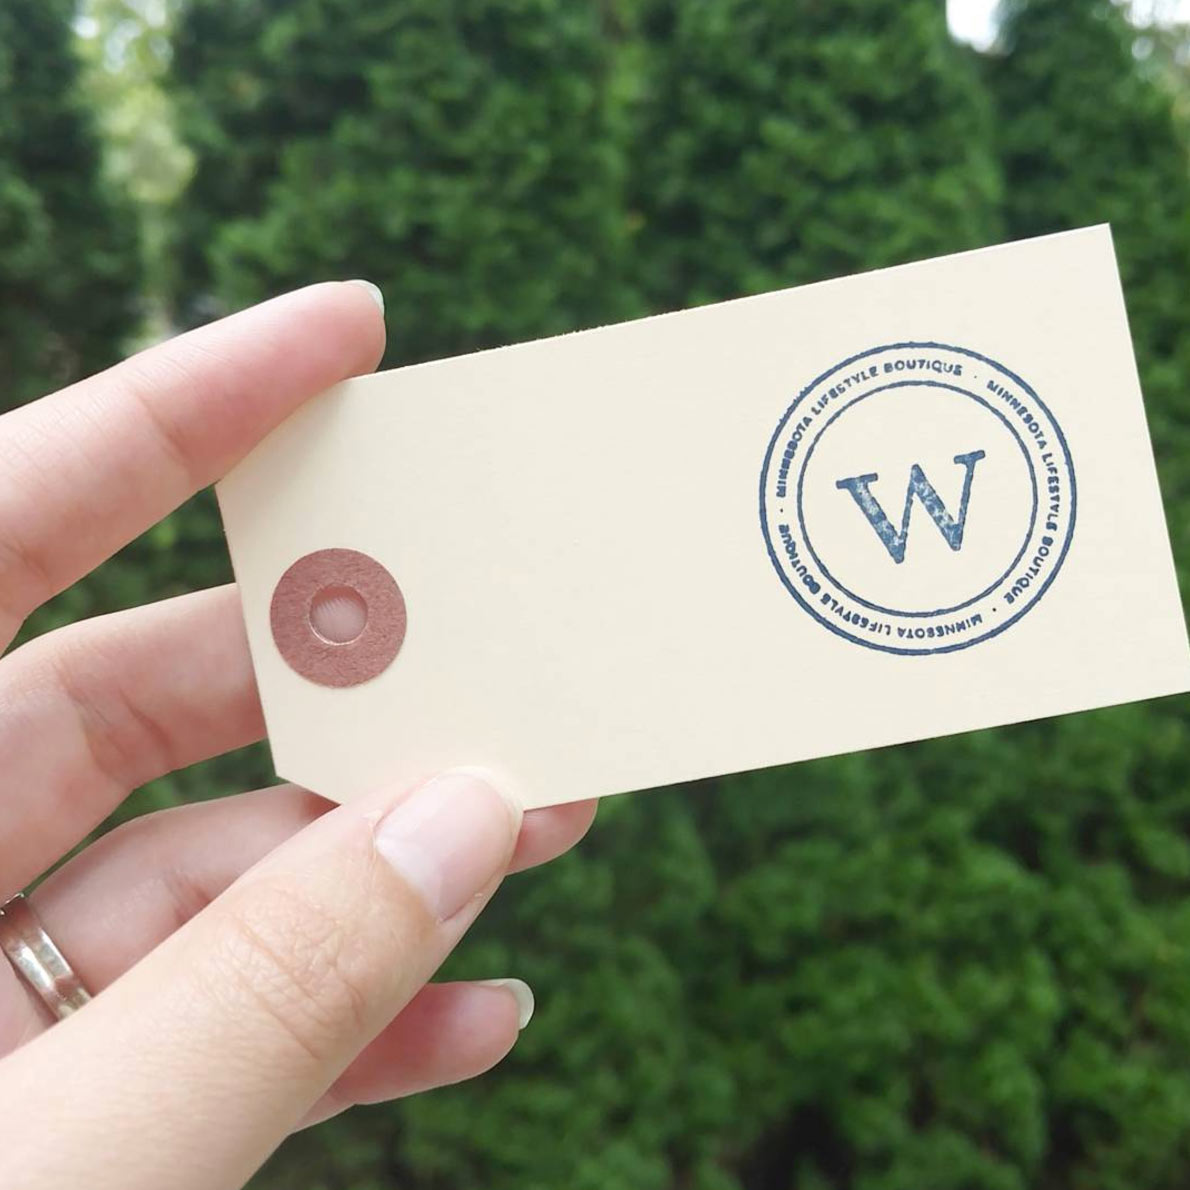 Winnie Lu Minnesota Lifestyle Boutique in Victoria, MN  |  Stamped product tags with watermark  |  Logo Design and Visual Branding by AllieMarie Design